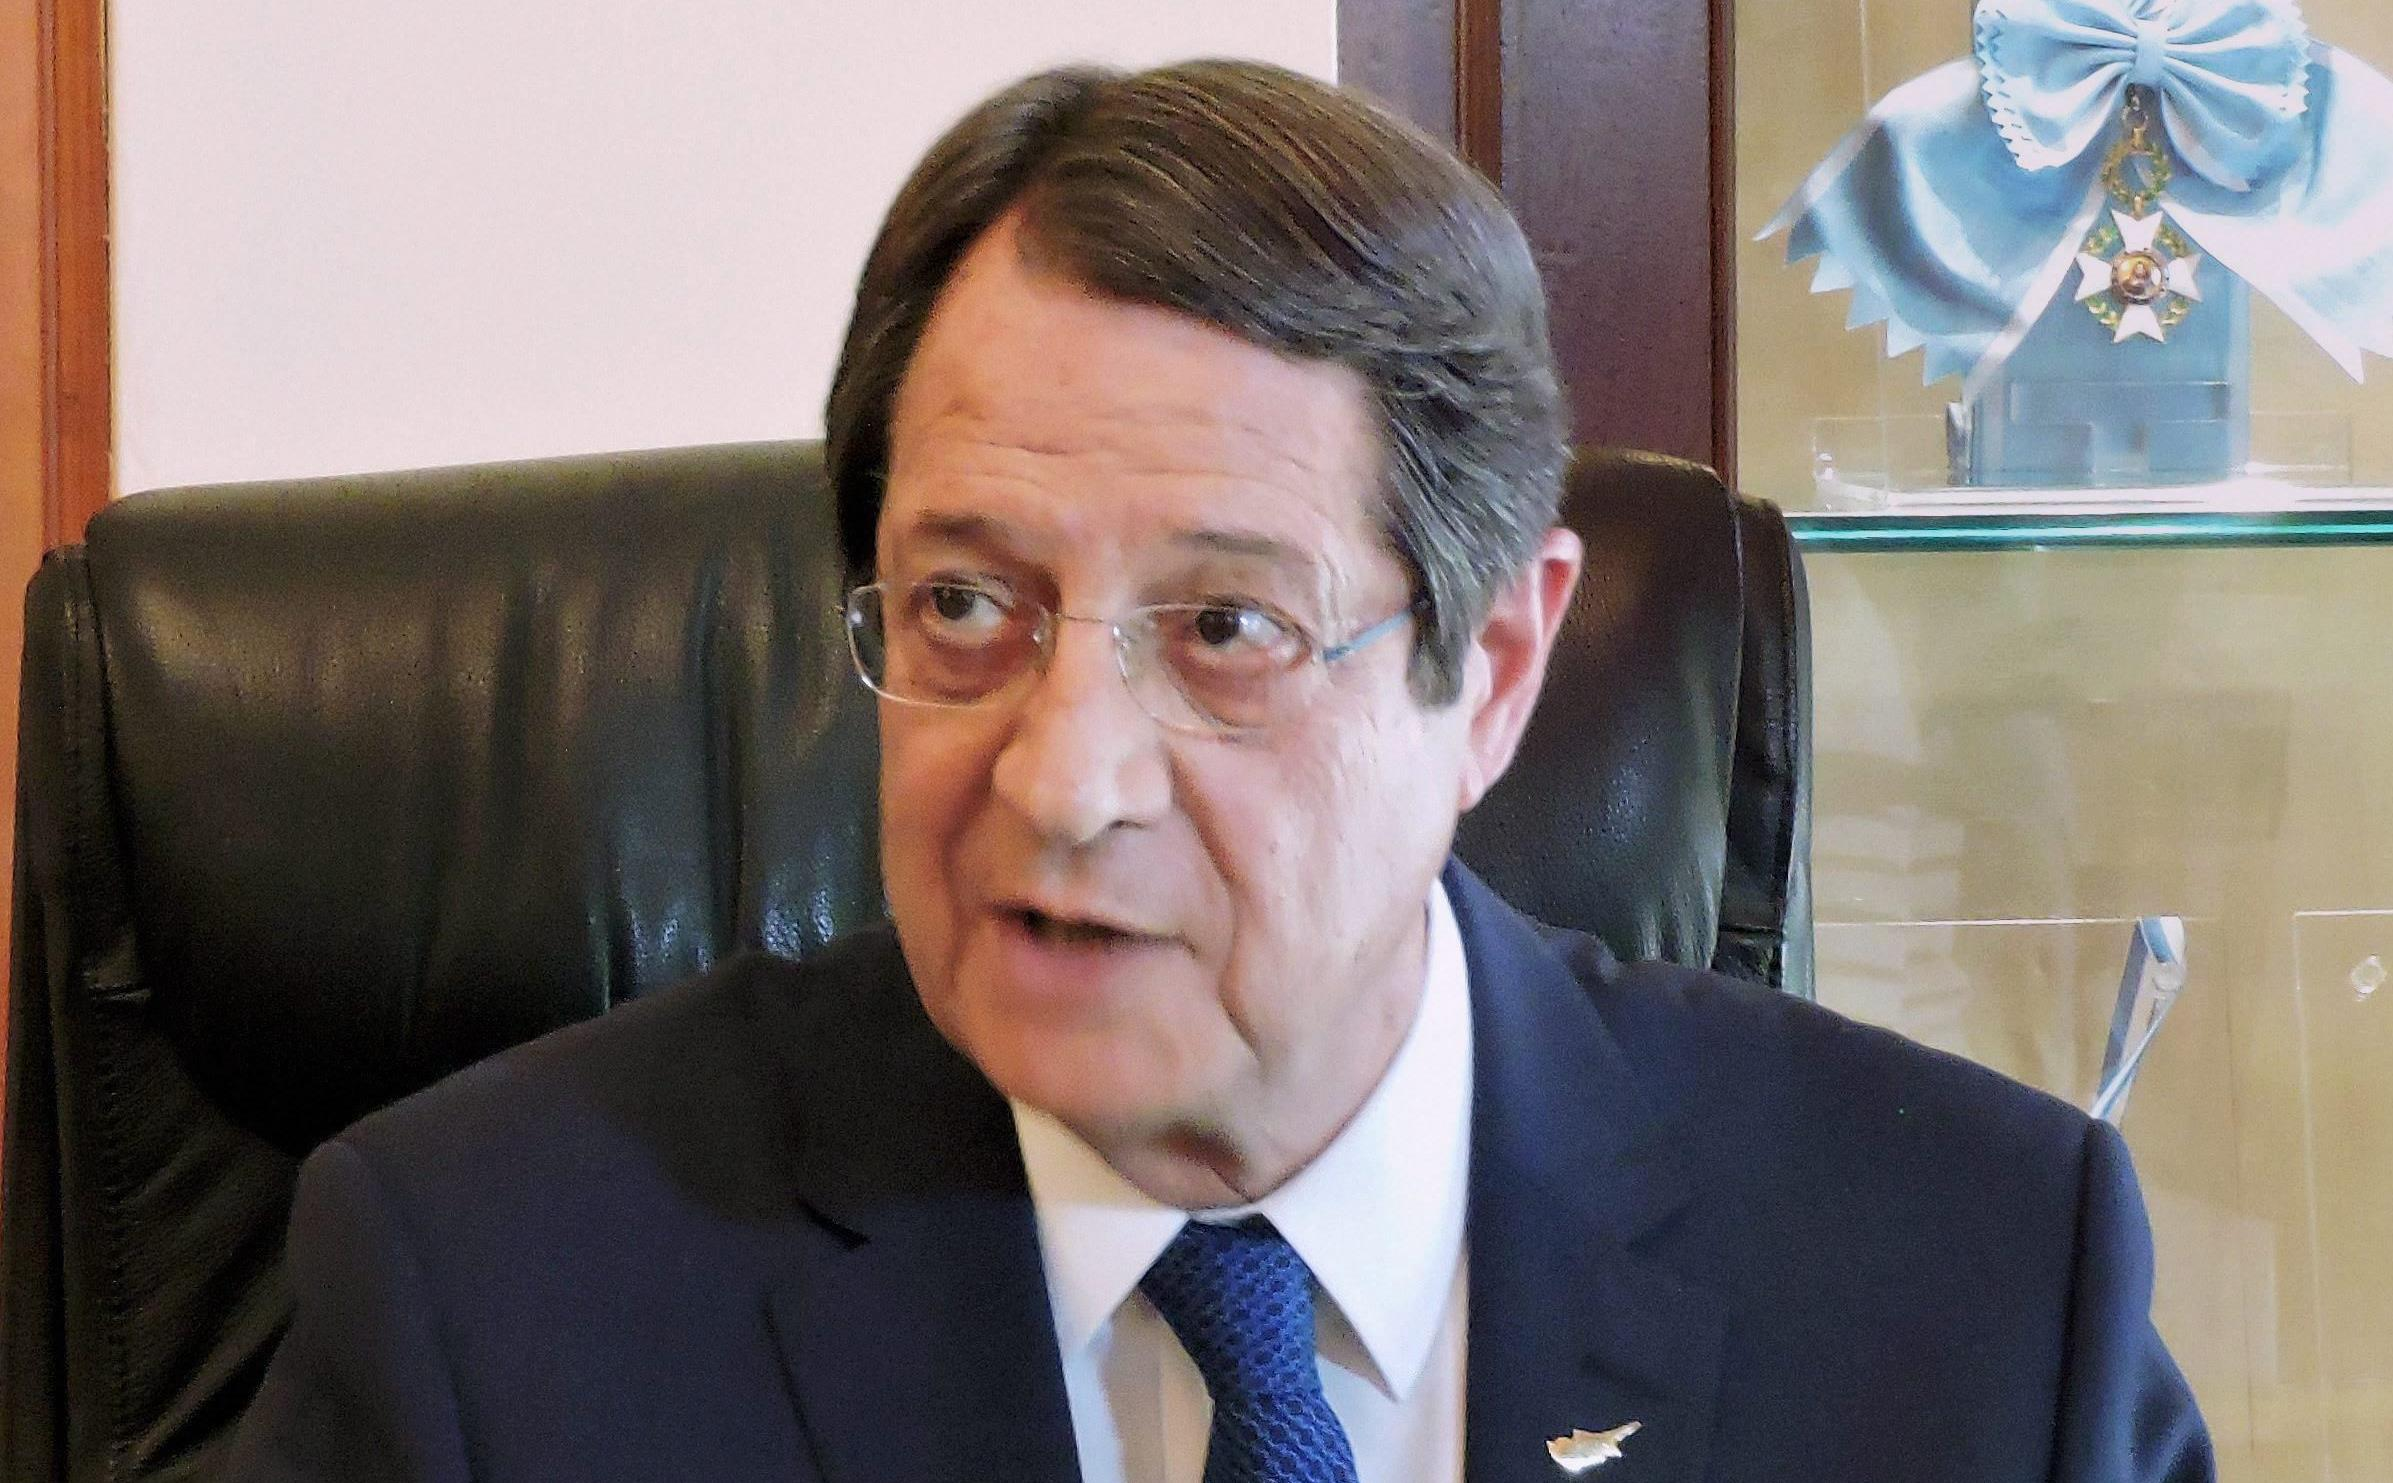 India Can Help in Cyprus Reunification, Says Cypriot President